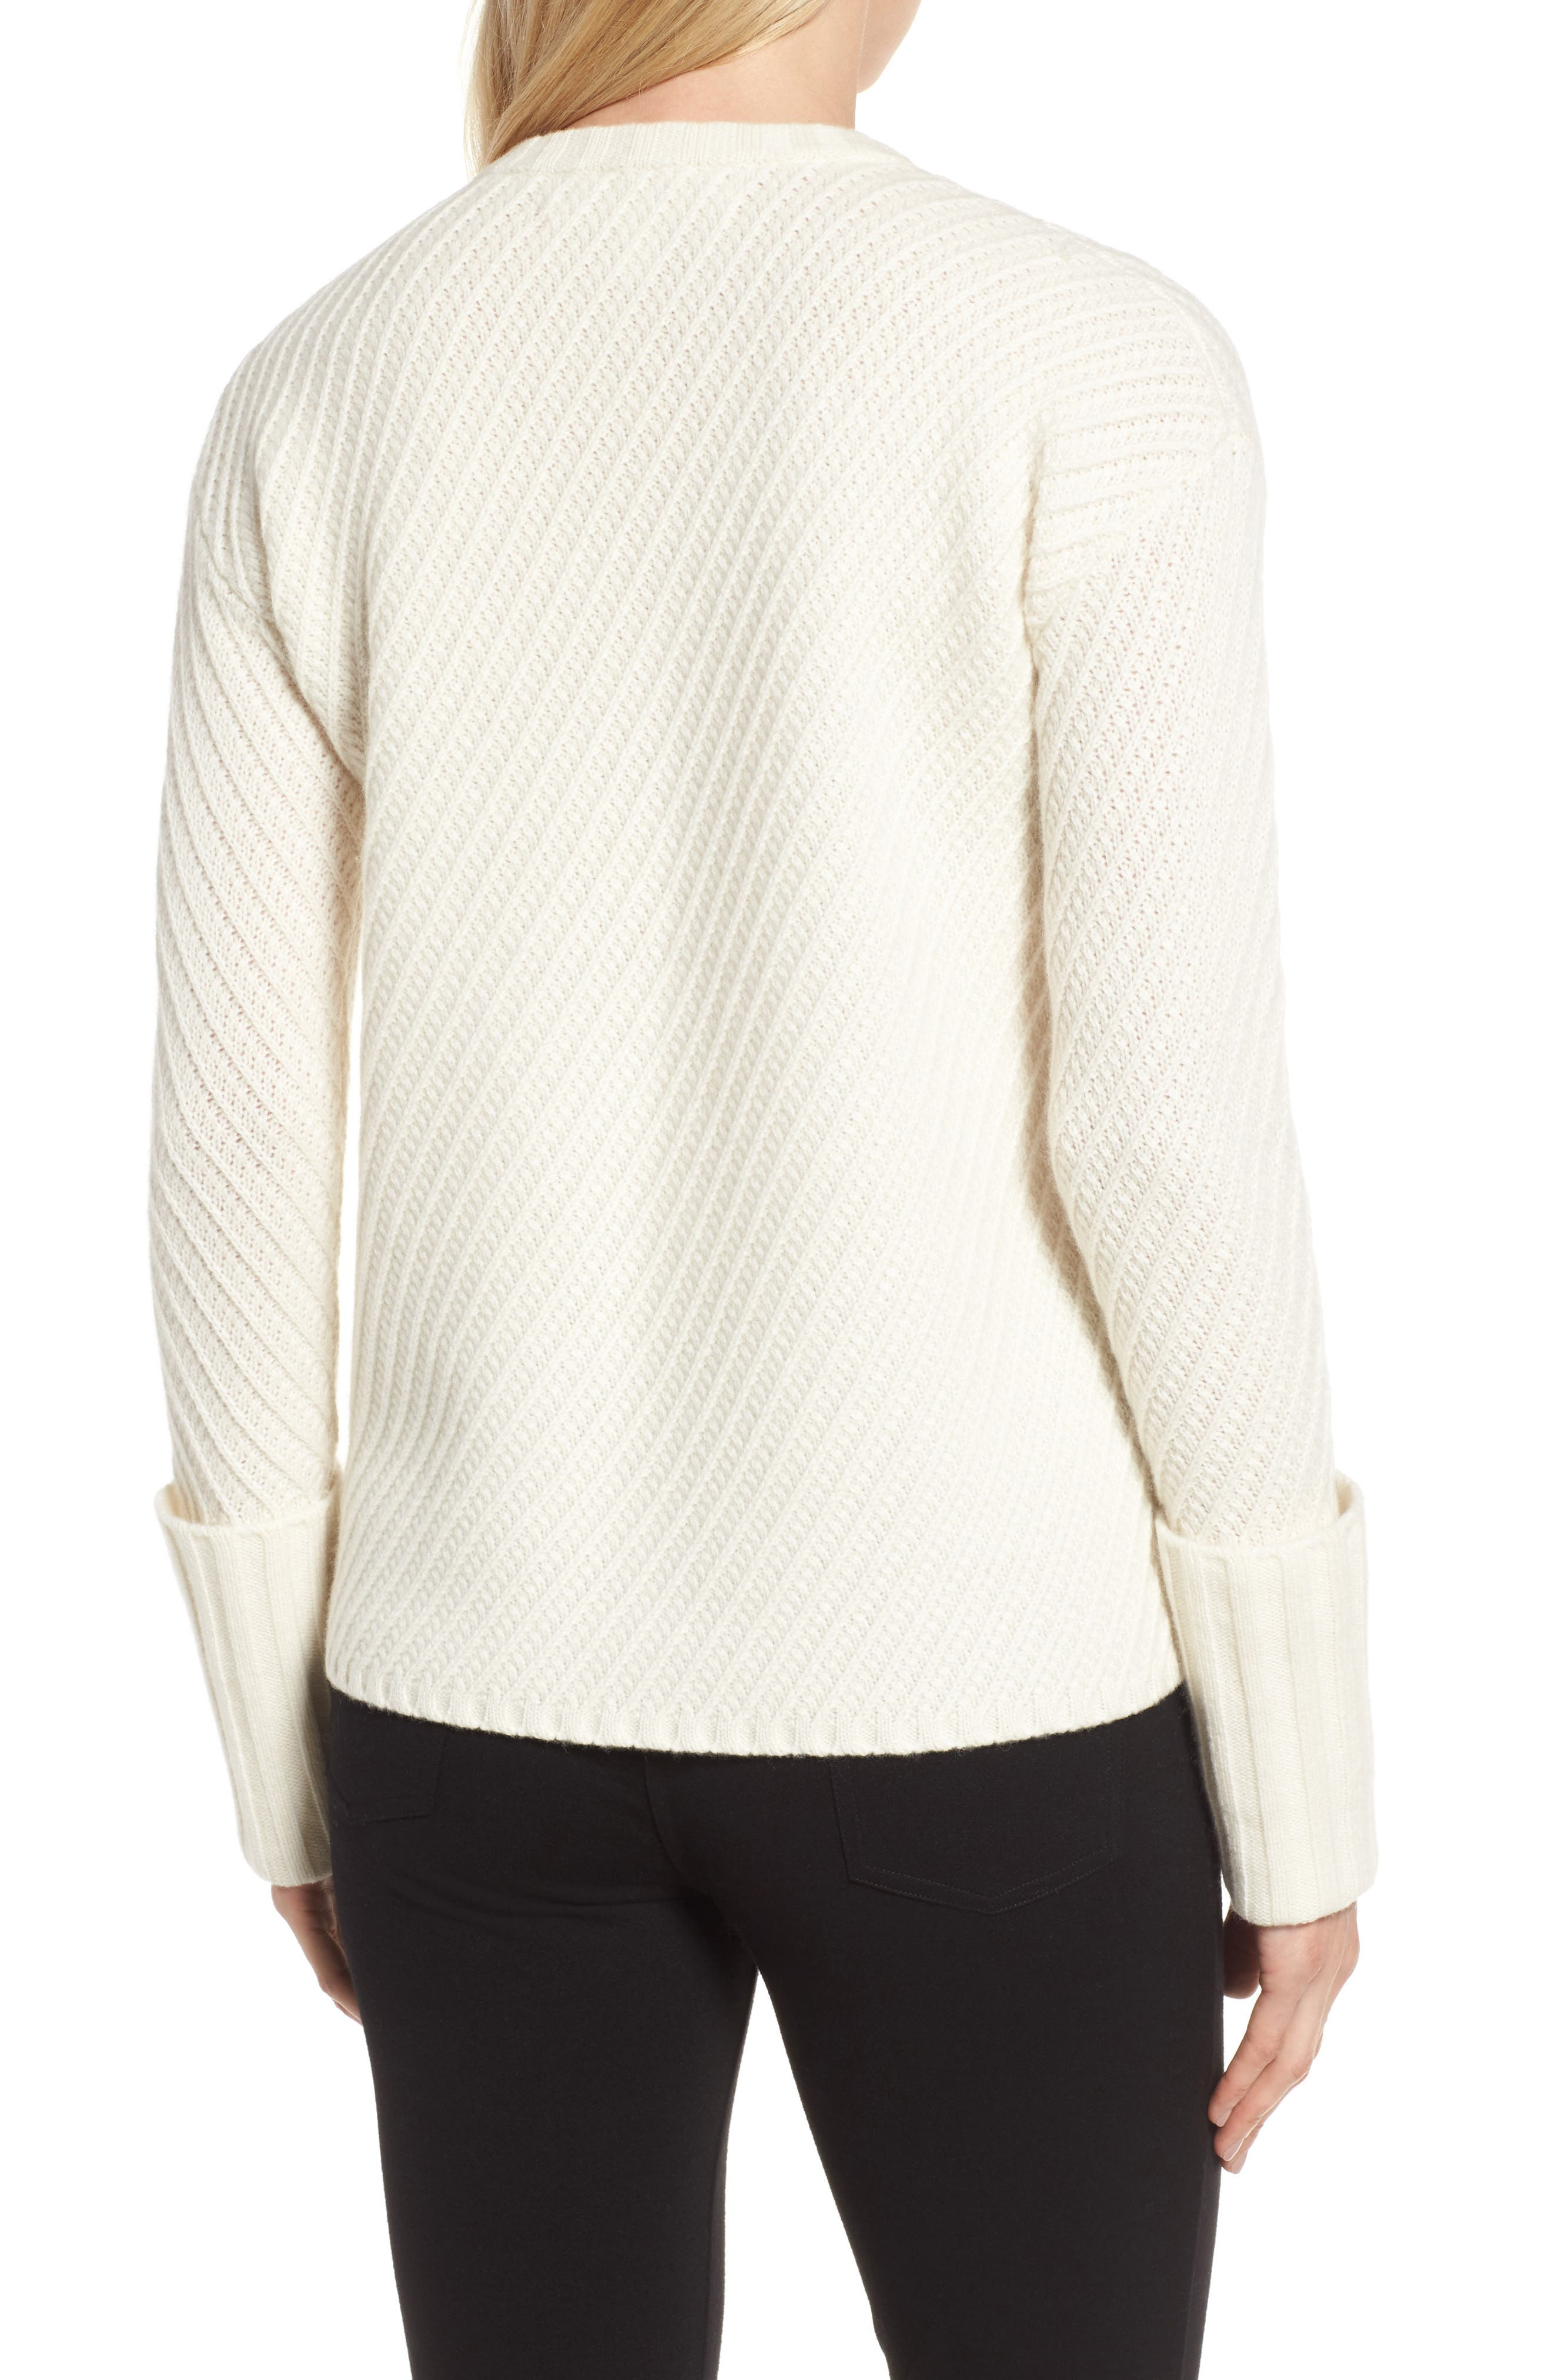 Textured Cashmere Sweater,                             Alternate thumbnail 2, color,